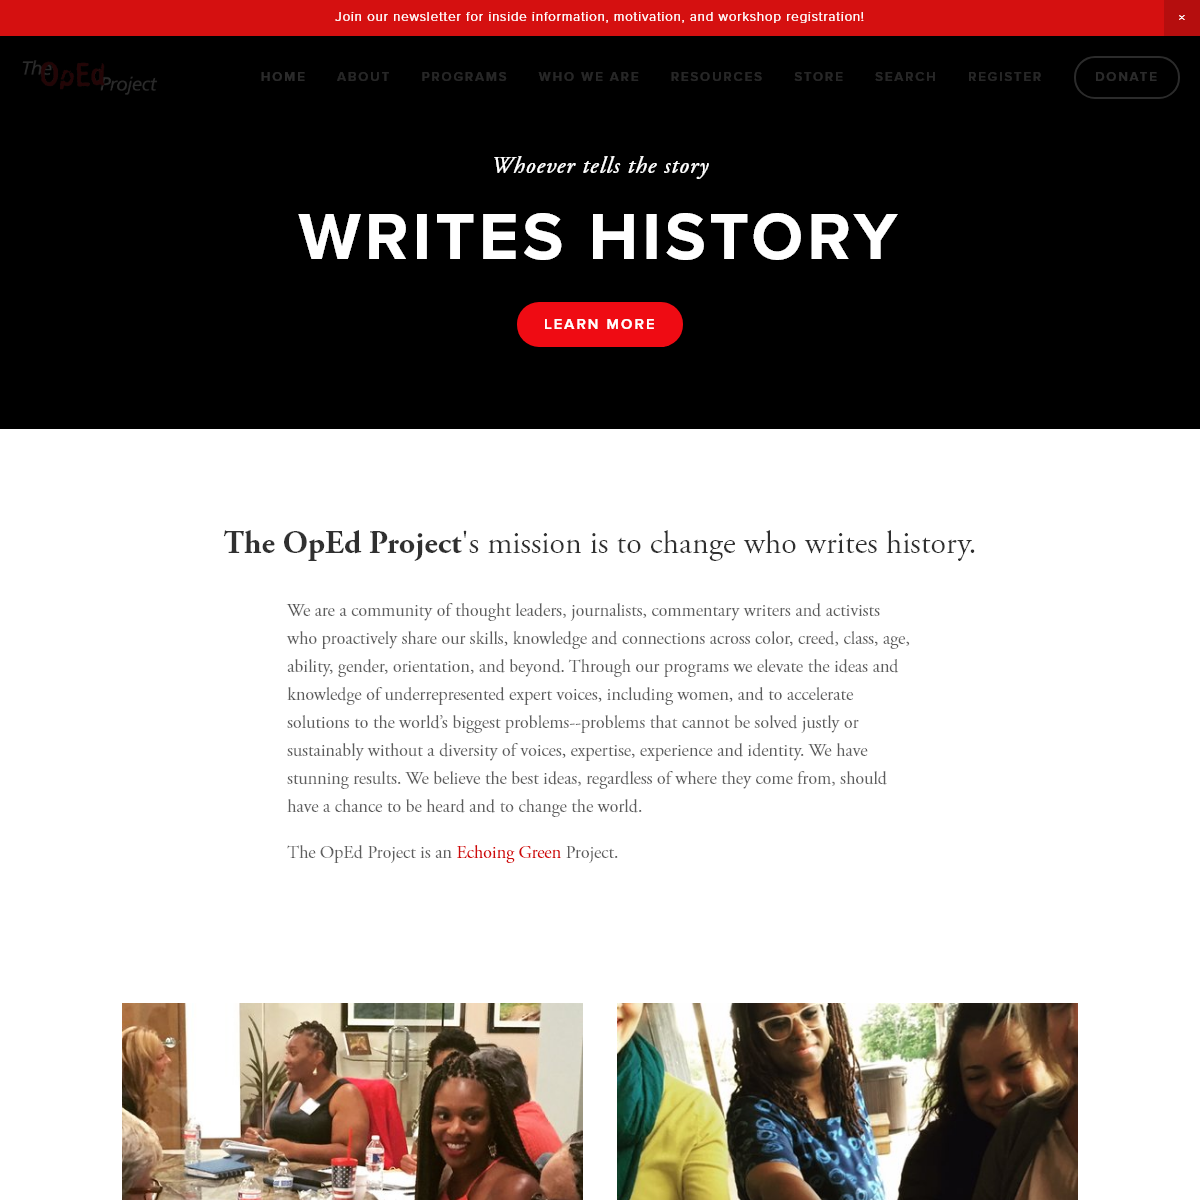 The OpEd Project